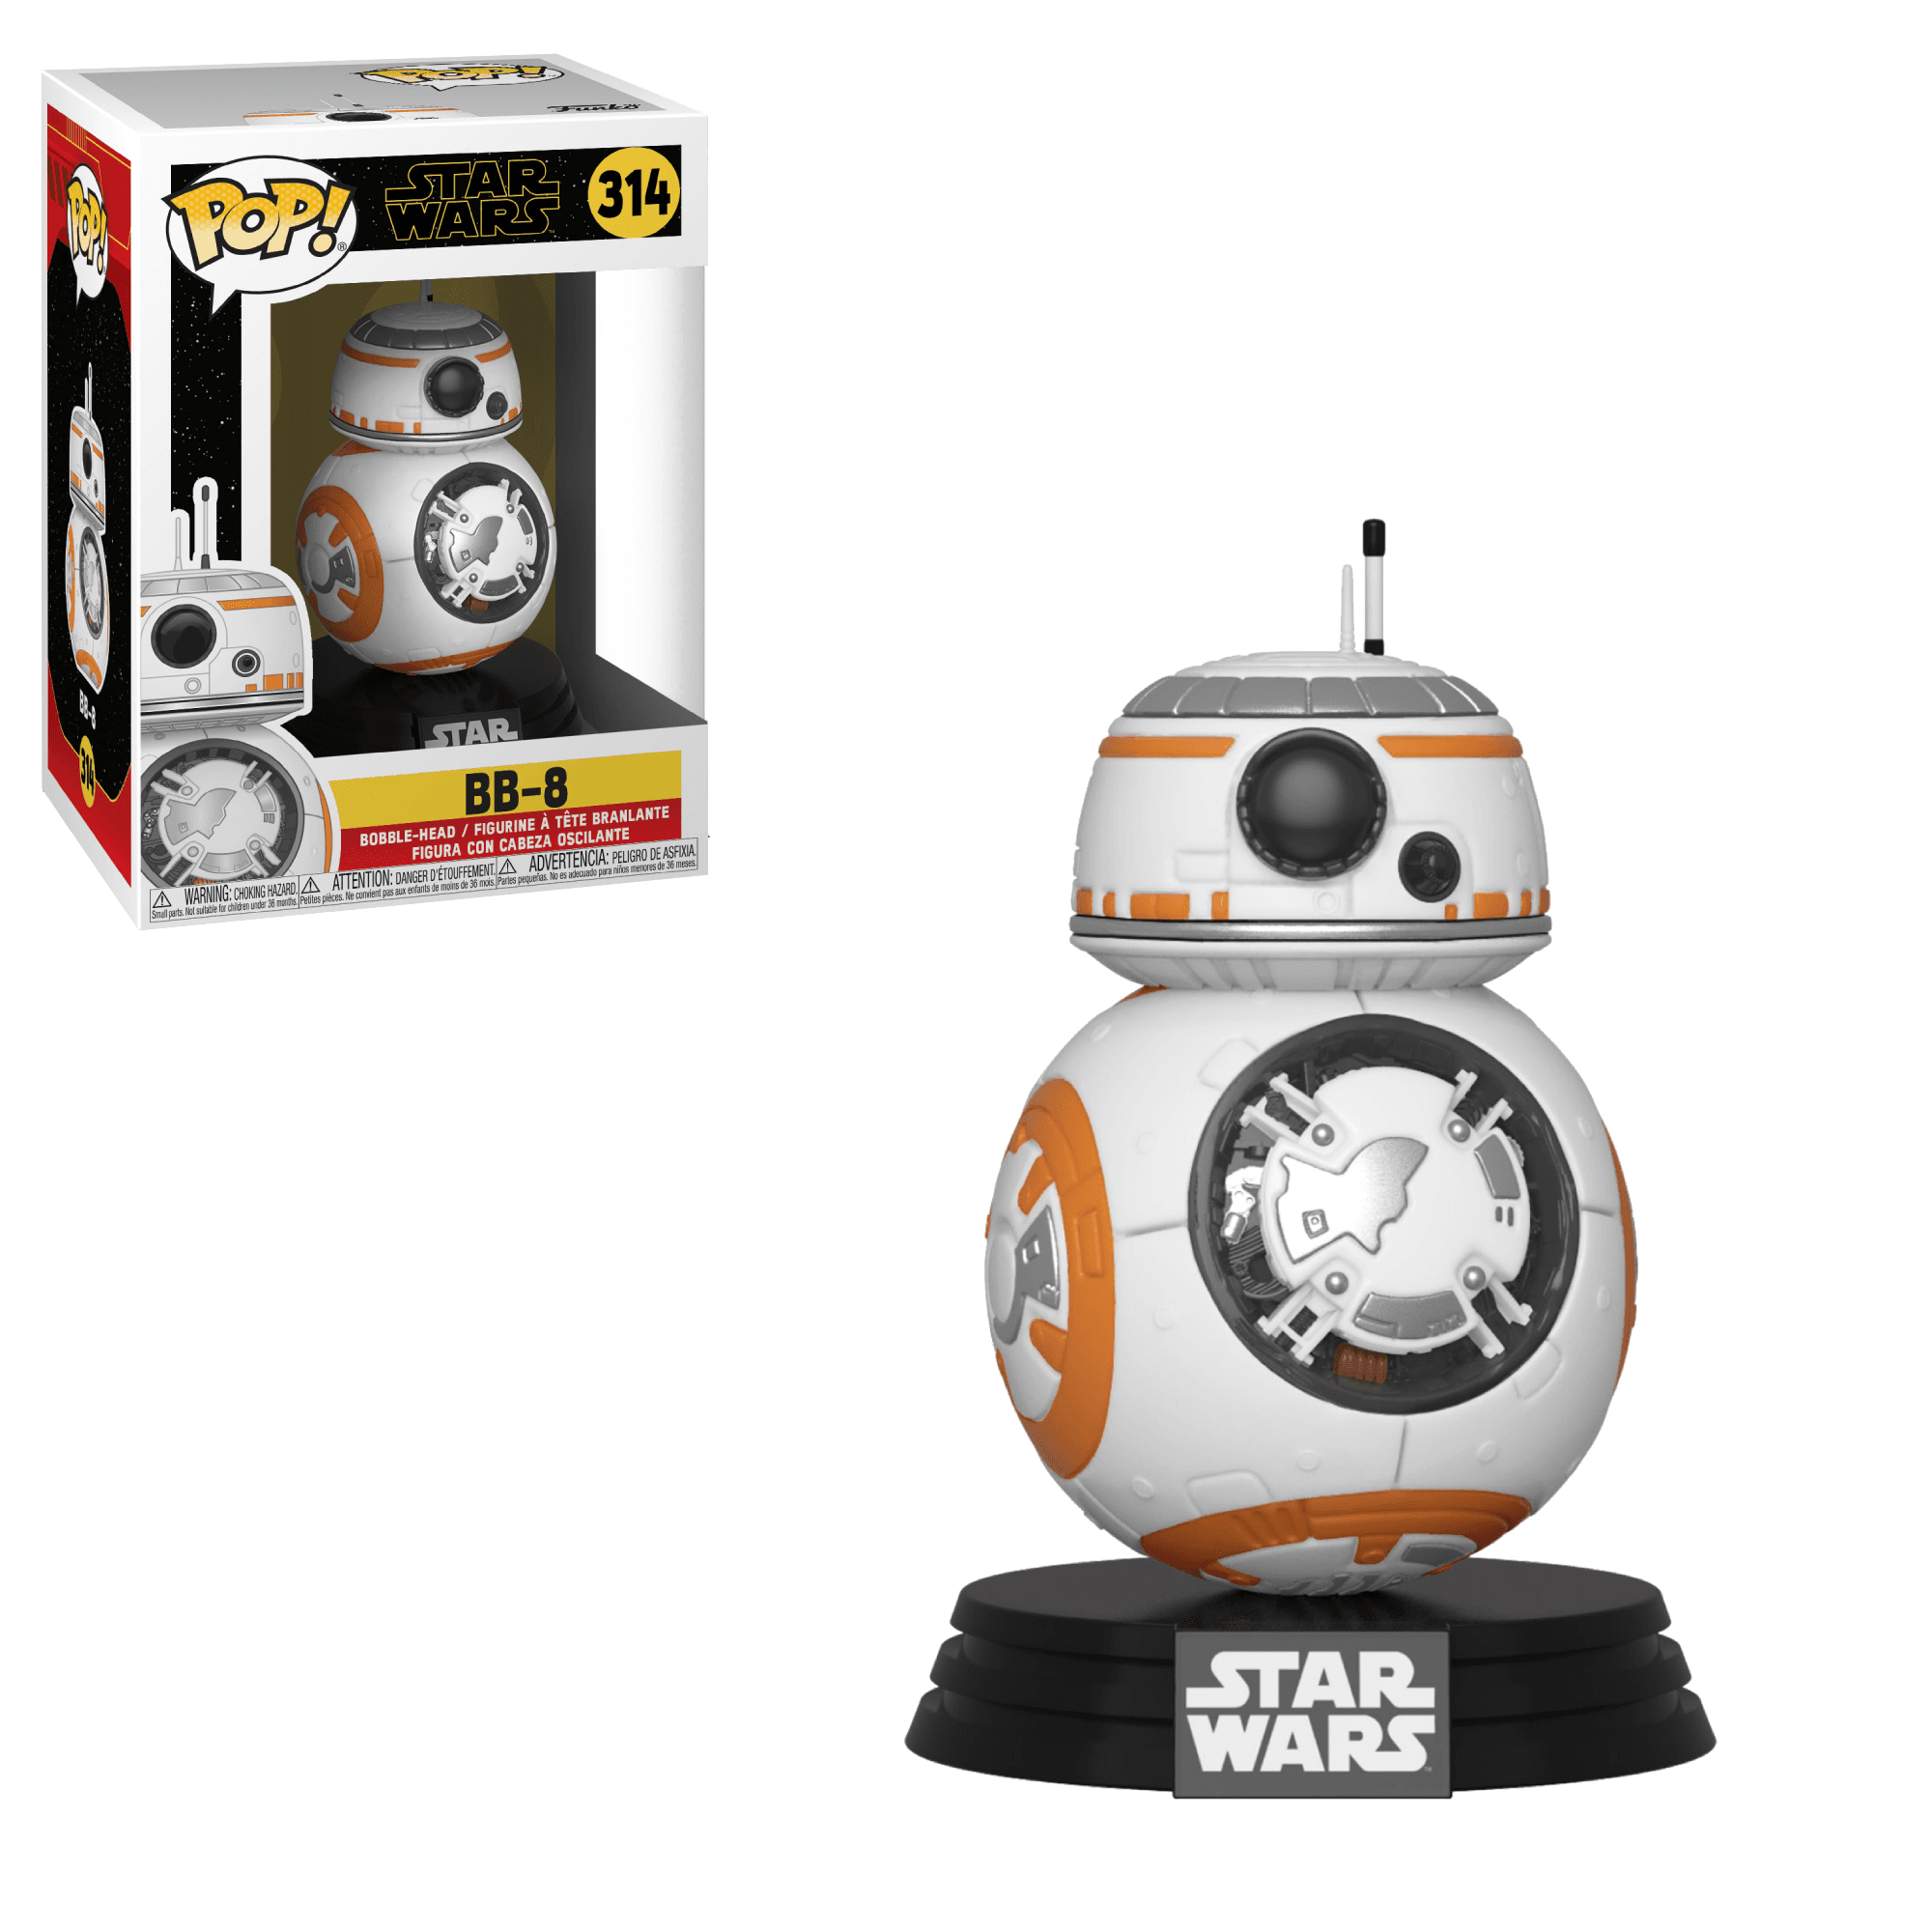 POP! Star Wars: The Force Awakens - BB-8 Vinyl Bobblehead Figure #314